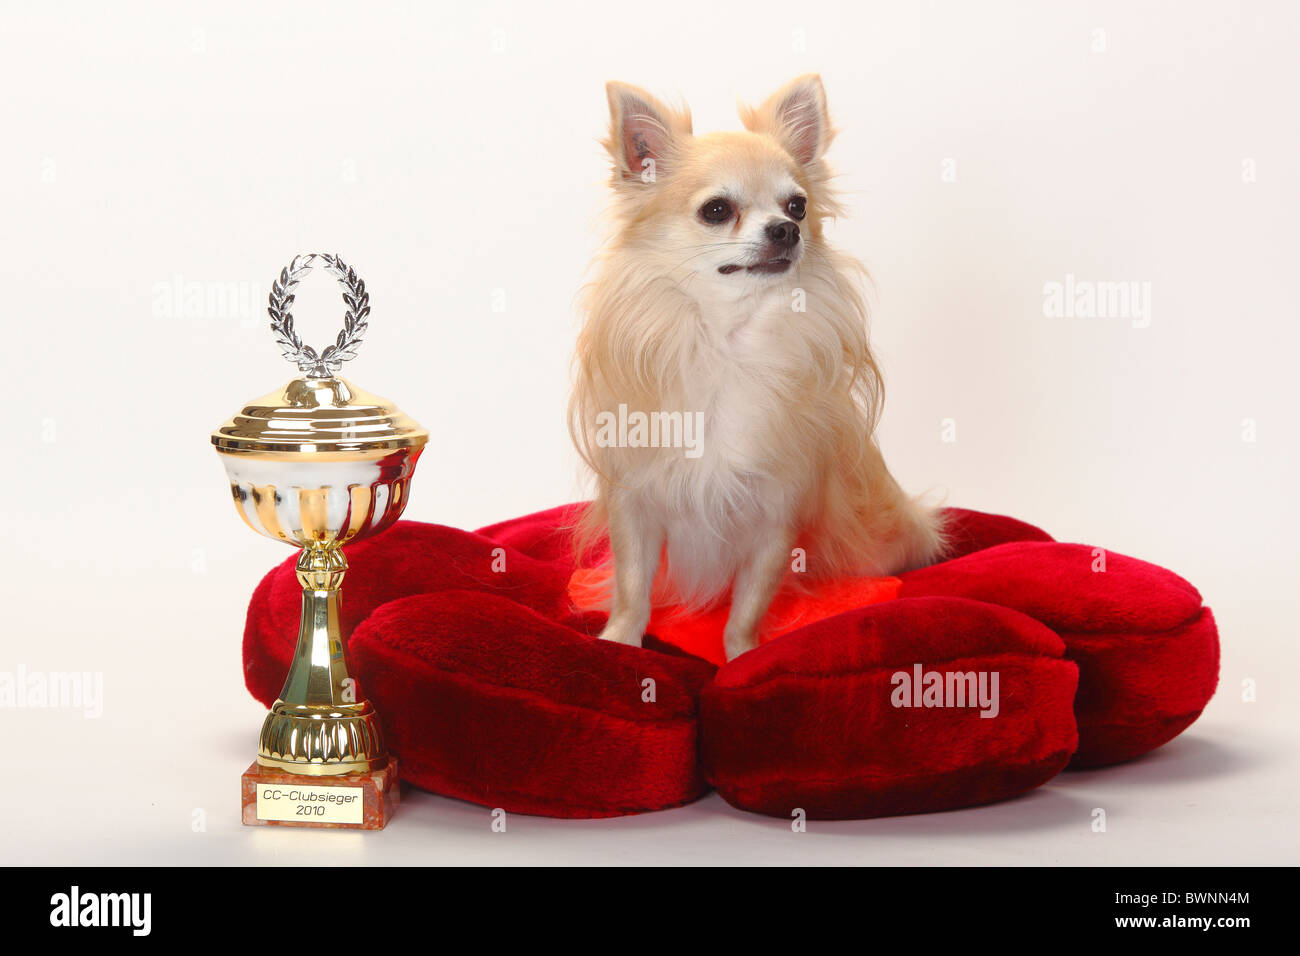 Chihuahua, longhaired, with cup / trophy, cushion, show dog, dog show - Stock Image